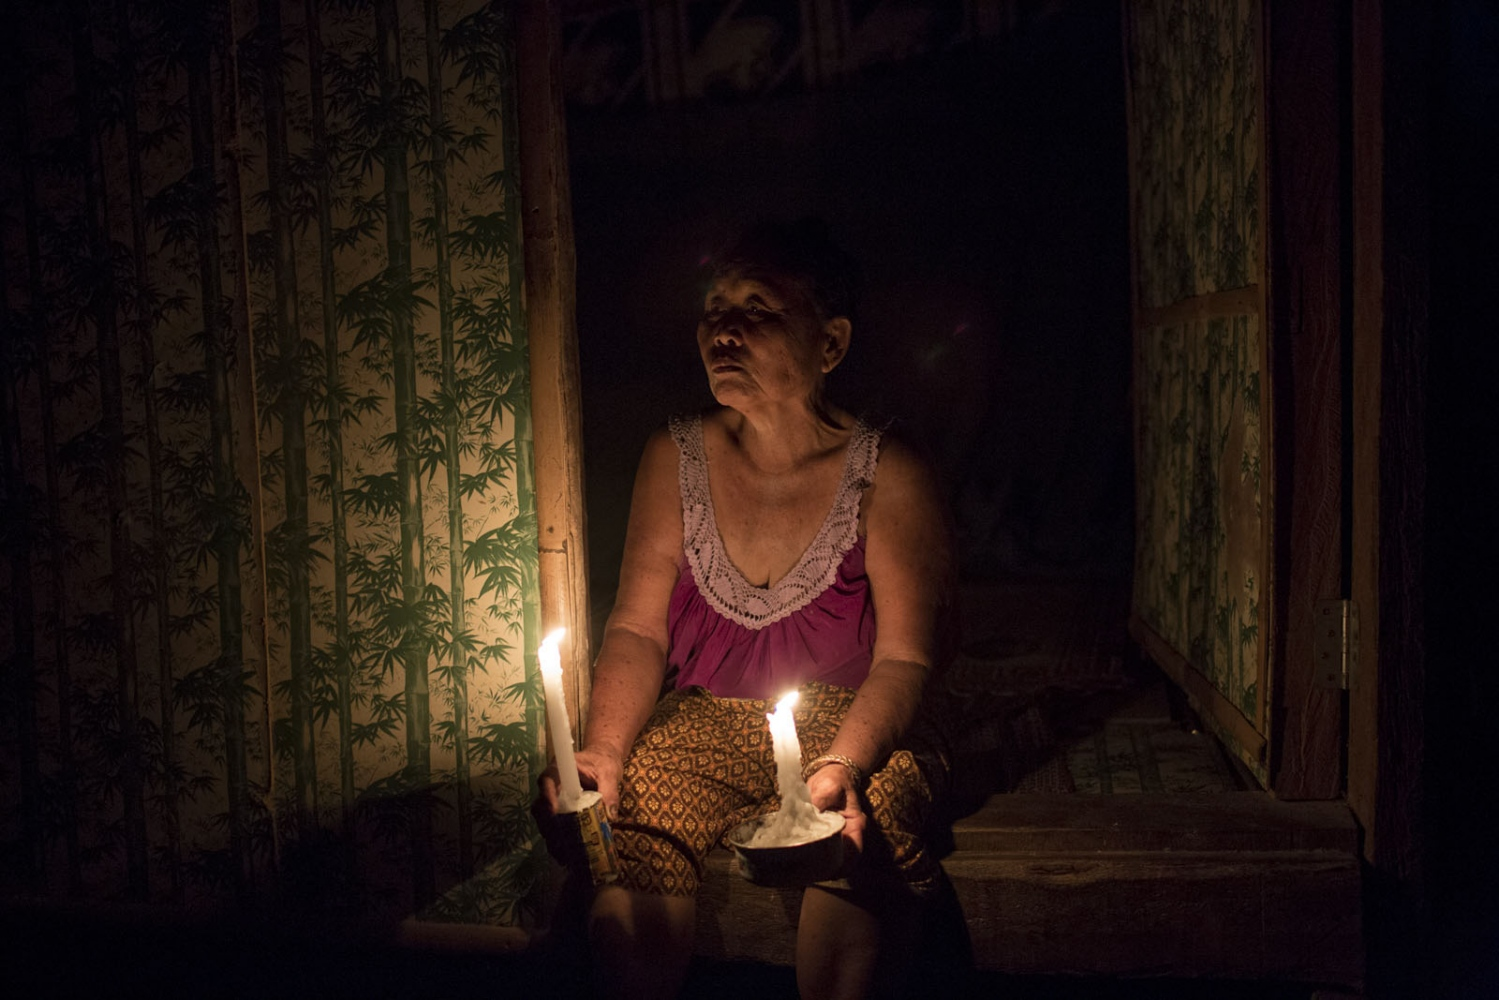 Rattana Seli, 66, sits in the entrance to her hut holding two candles. The village has no electricity so at night mostly candles are used. May 2016.